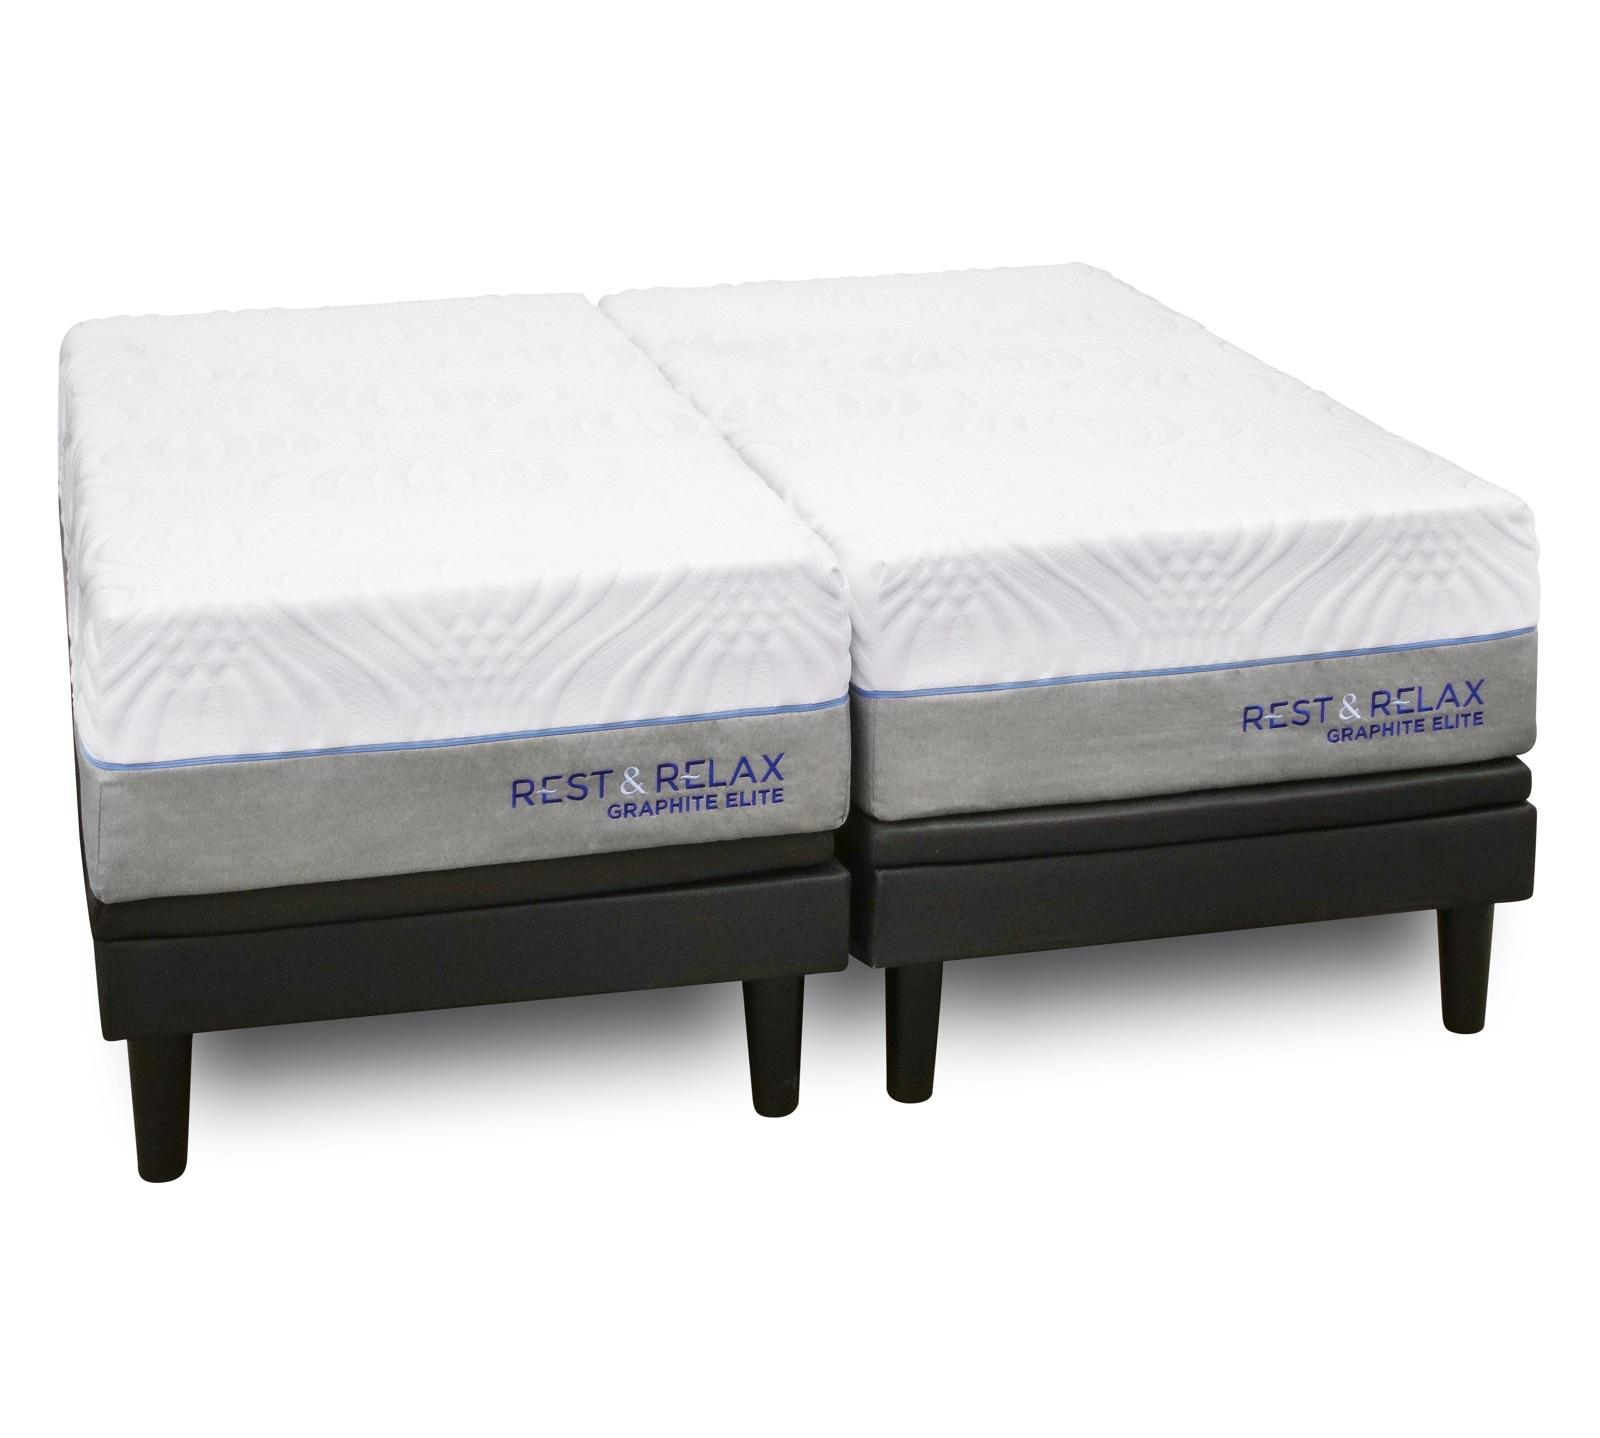 Beautyrest Black Hybrid Gladney Mattresses Twin Extra Long Mattress Plus Has The Most